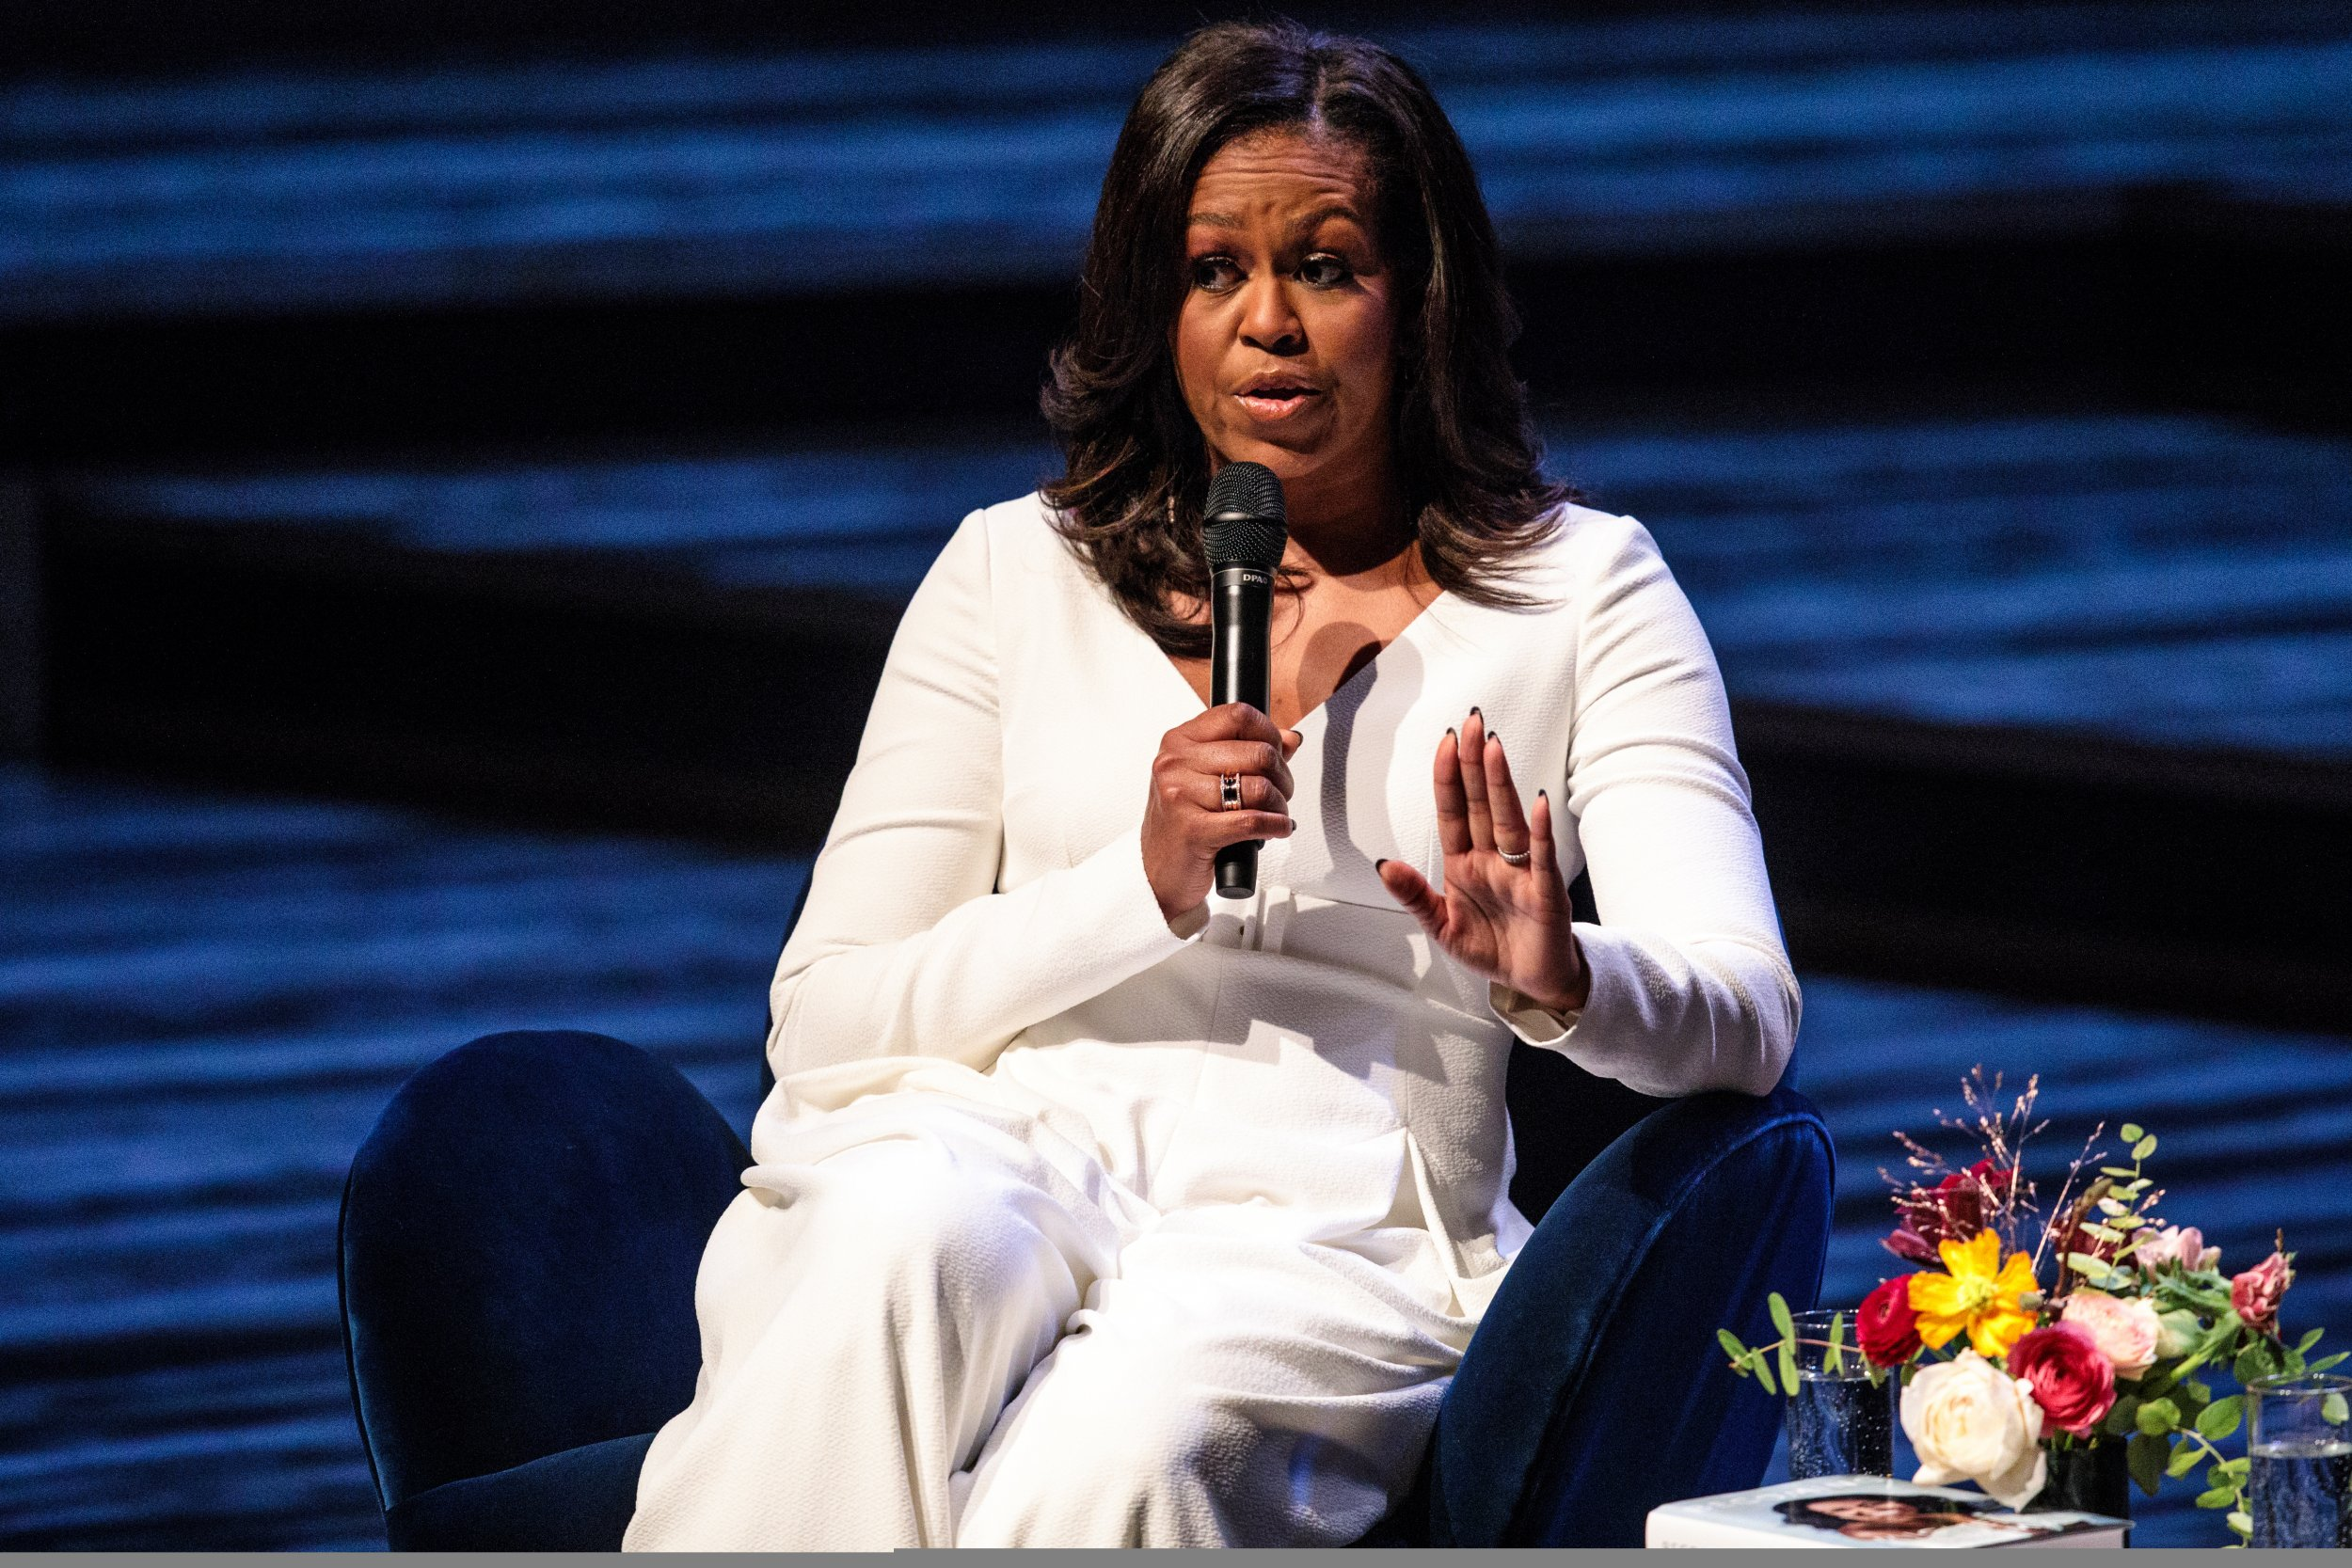 Michelle Obama thesis was on racial divide - POLITICO